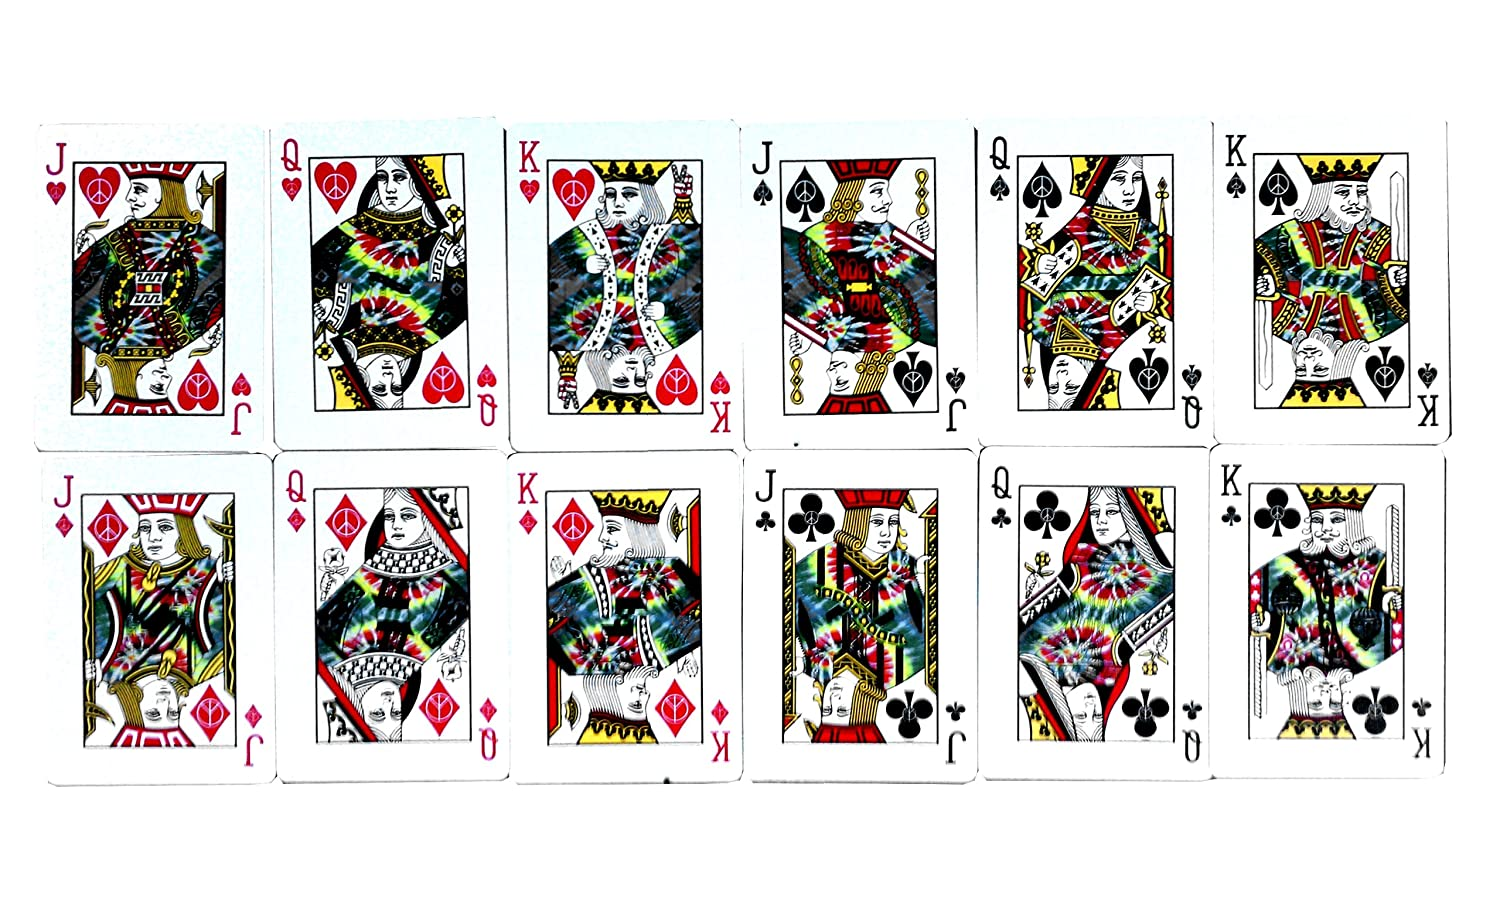 Merz67 Exclusive Lot 2 Bicycle Tie Dye Playing Cards Collection 1st and 2nd Generation Decks